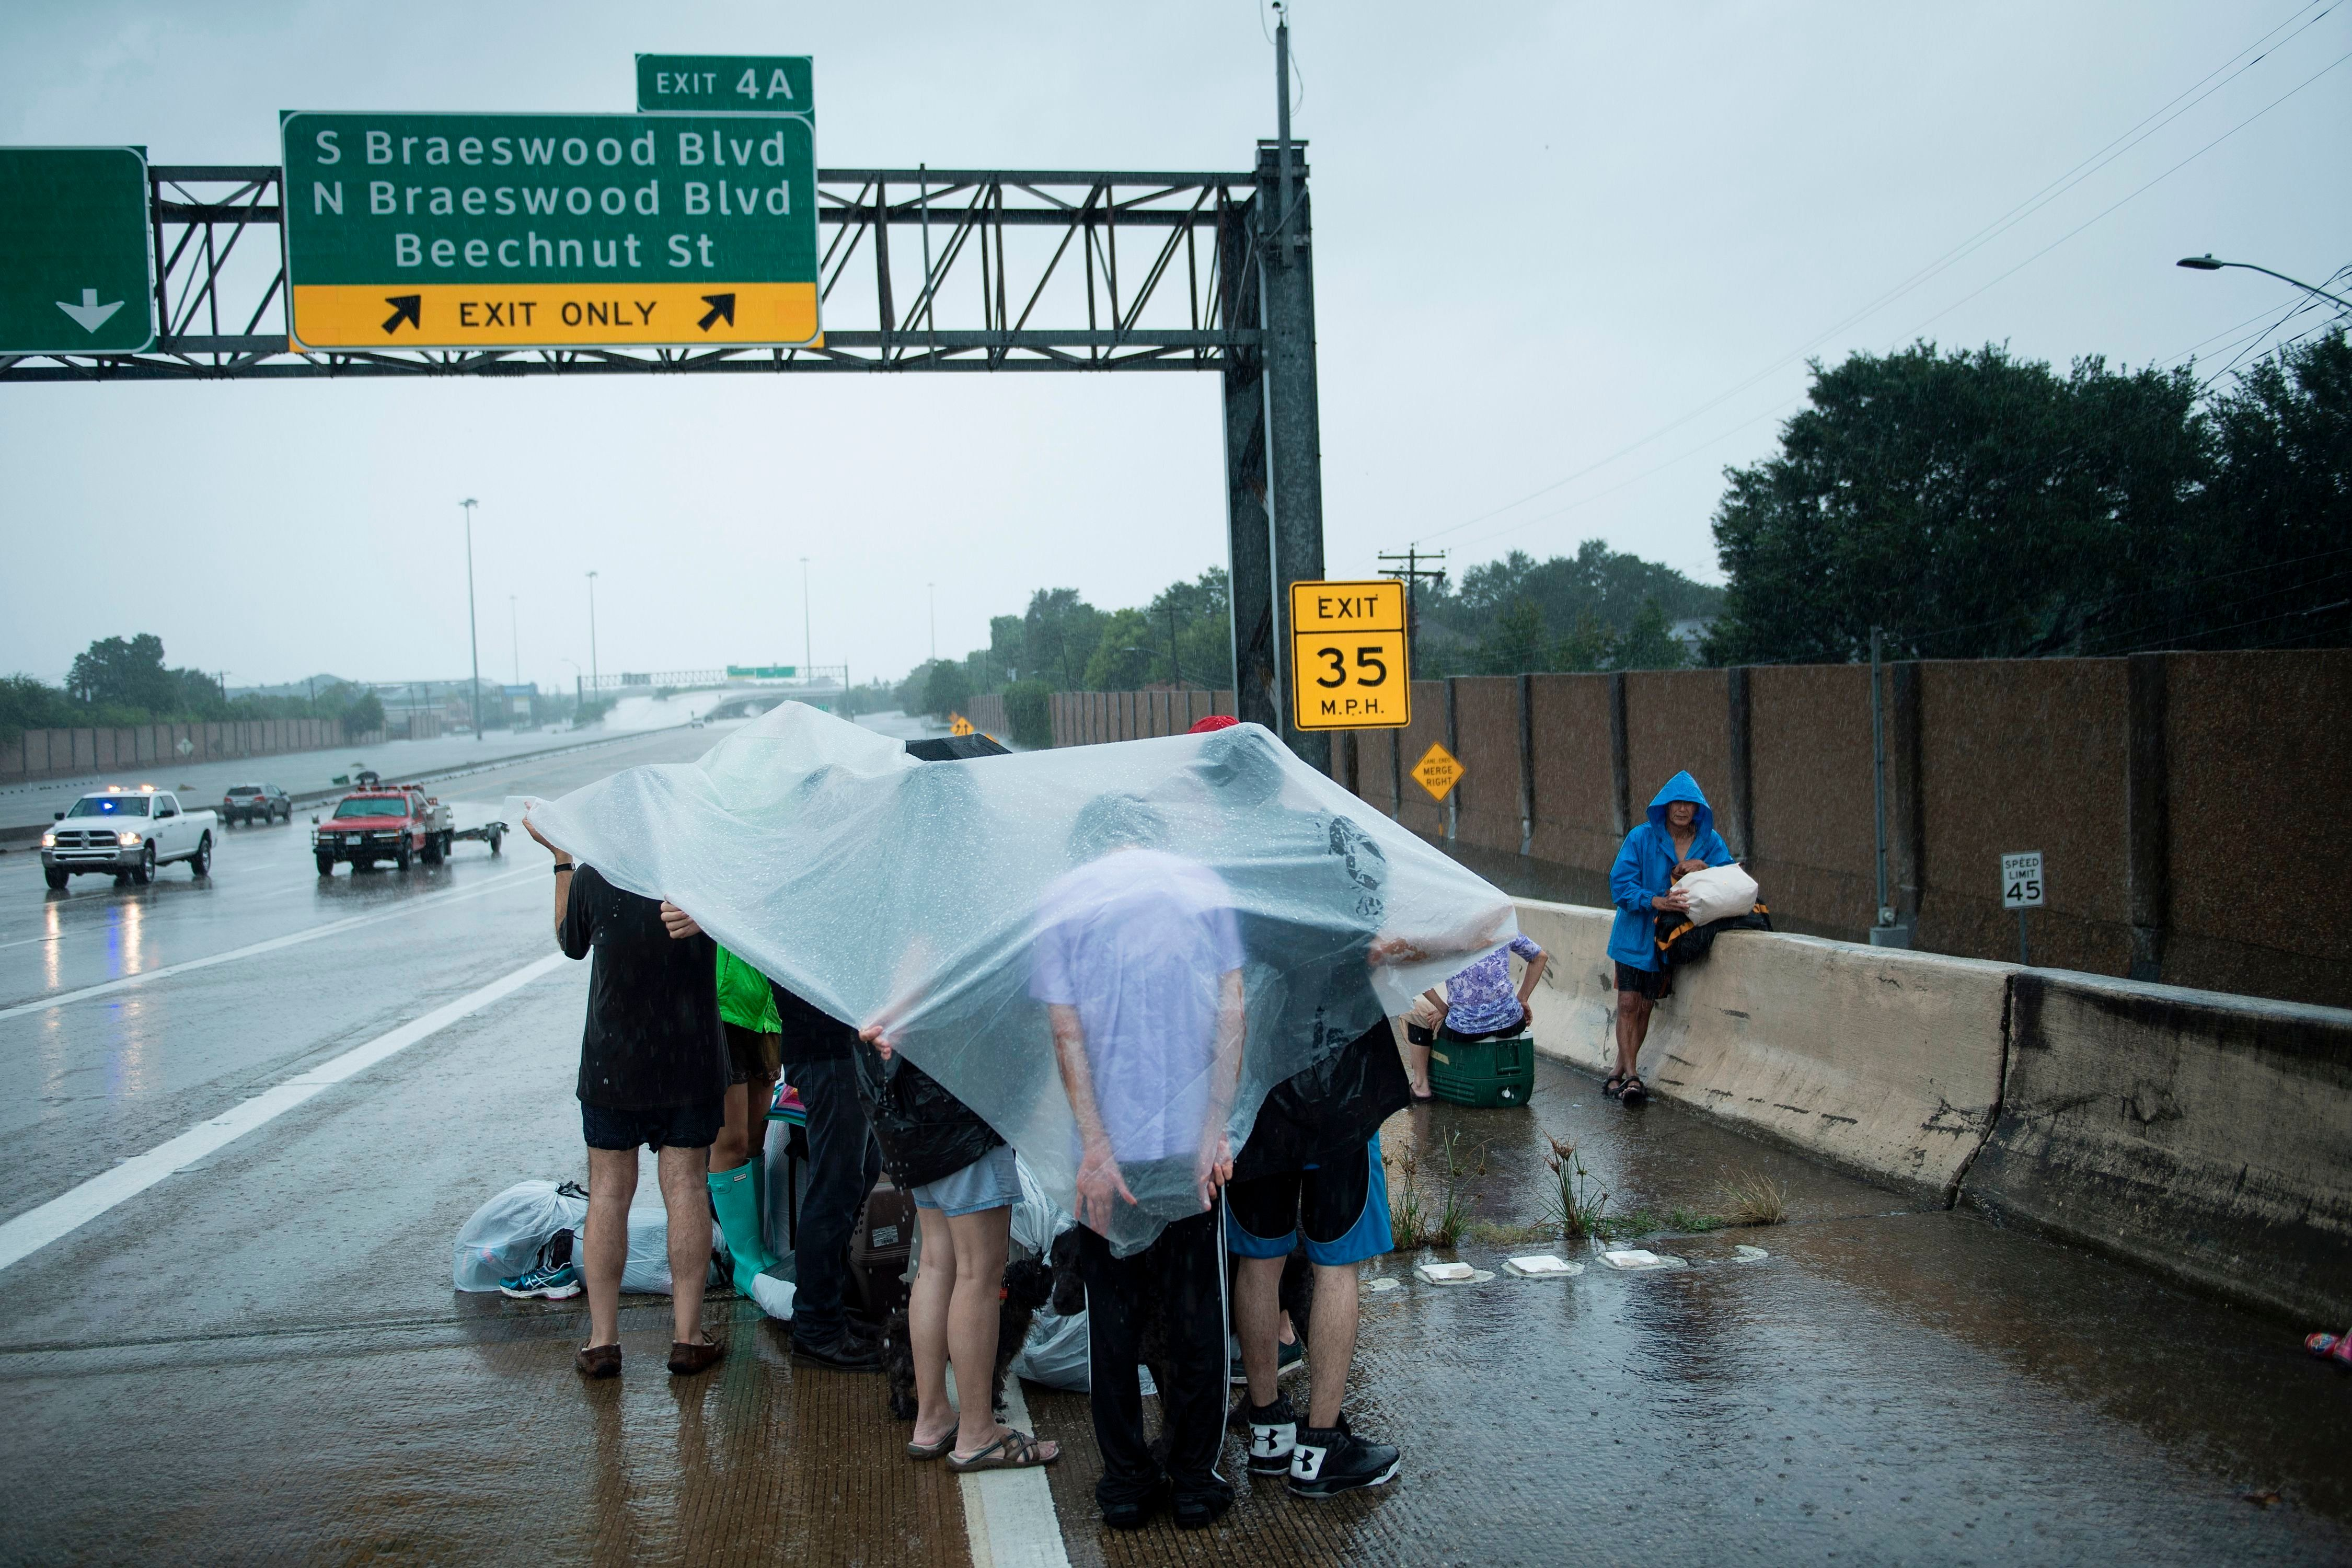 TOPSHOT - Evacuation residents from the Meyerland wait on an I-610 overpass for further help during the aftermath of Hurricane Harvey August 27, 2017 in Houston, Texas. Hurricane Harvey left a trail of devastation Saturday after the most powerful storm to hit the US mainland in over a decade slammed into Texas, destroying homes, severing power supplies and forcing tens of thousands of residents to flee. / AFP PHOTO / Brendan Smialowski        (Photo credit should read BRENDAN SMIALOWSKI/AFP/Getty Images)